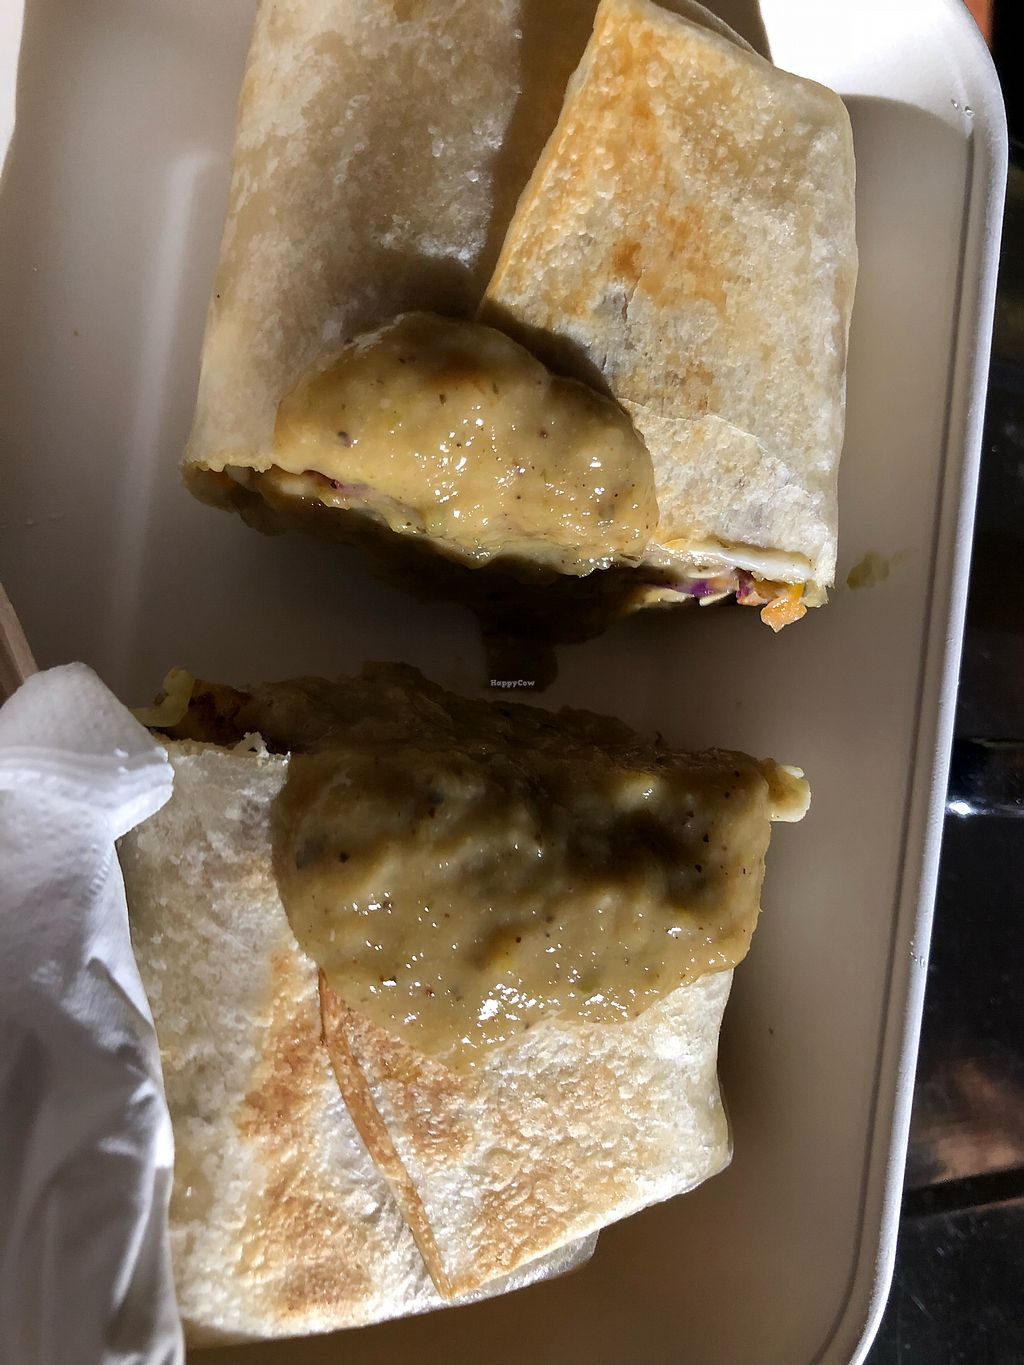 """Photo of Kult Kafe  by <a href=""""/members/profile/CherylQuincy"""">CherylQuincy</a> <br/>Burrito ?  <br/> February 2, 2018  - <a href='/contact/abuse/image/94818/354101'>Report</a>"""